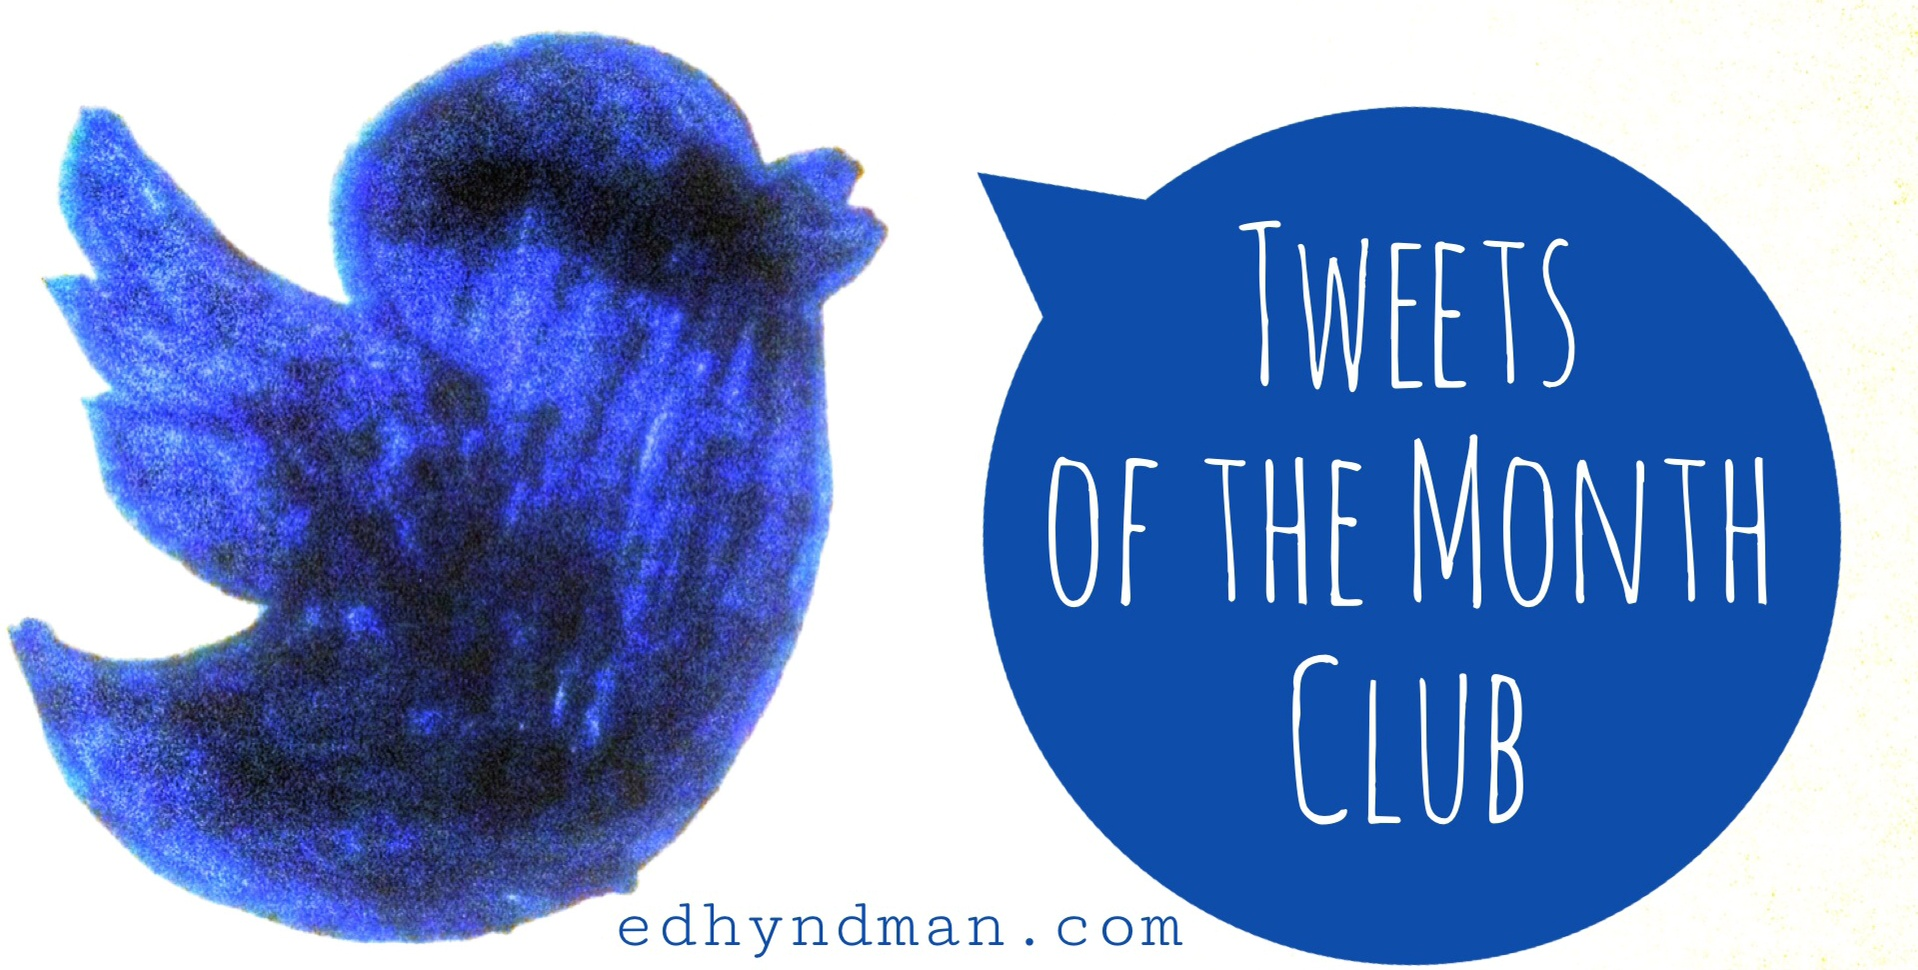 Tweets of the Month Club | March 2018